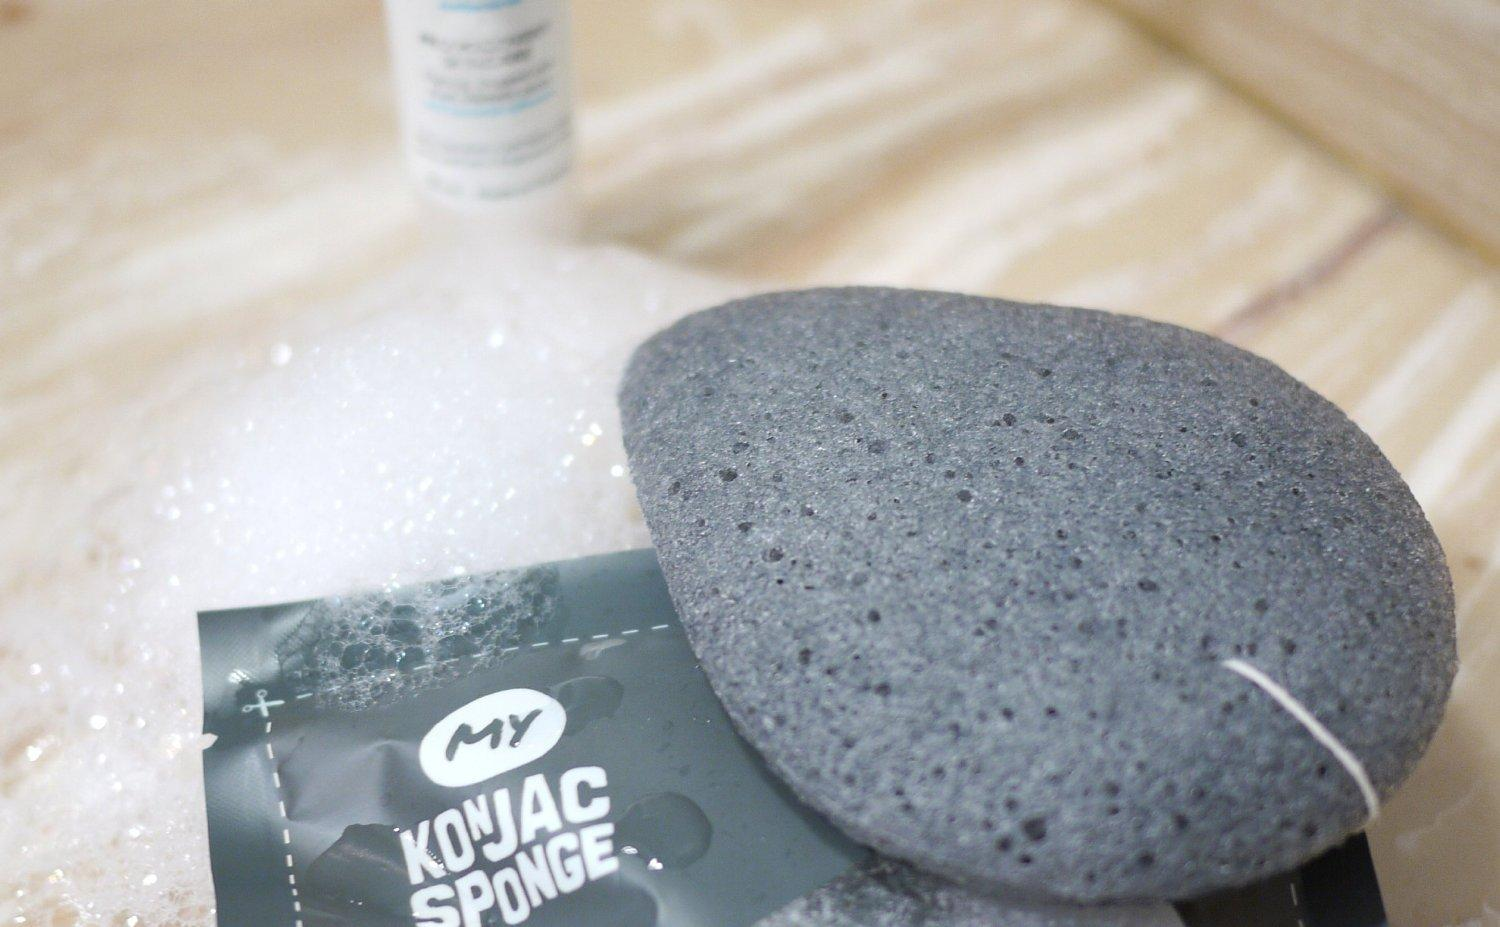 My Konjac Sponge - All Natural Fiber Bamboo Charcoal Facial Sponge (Grey)